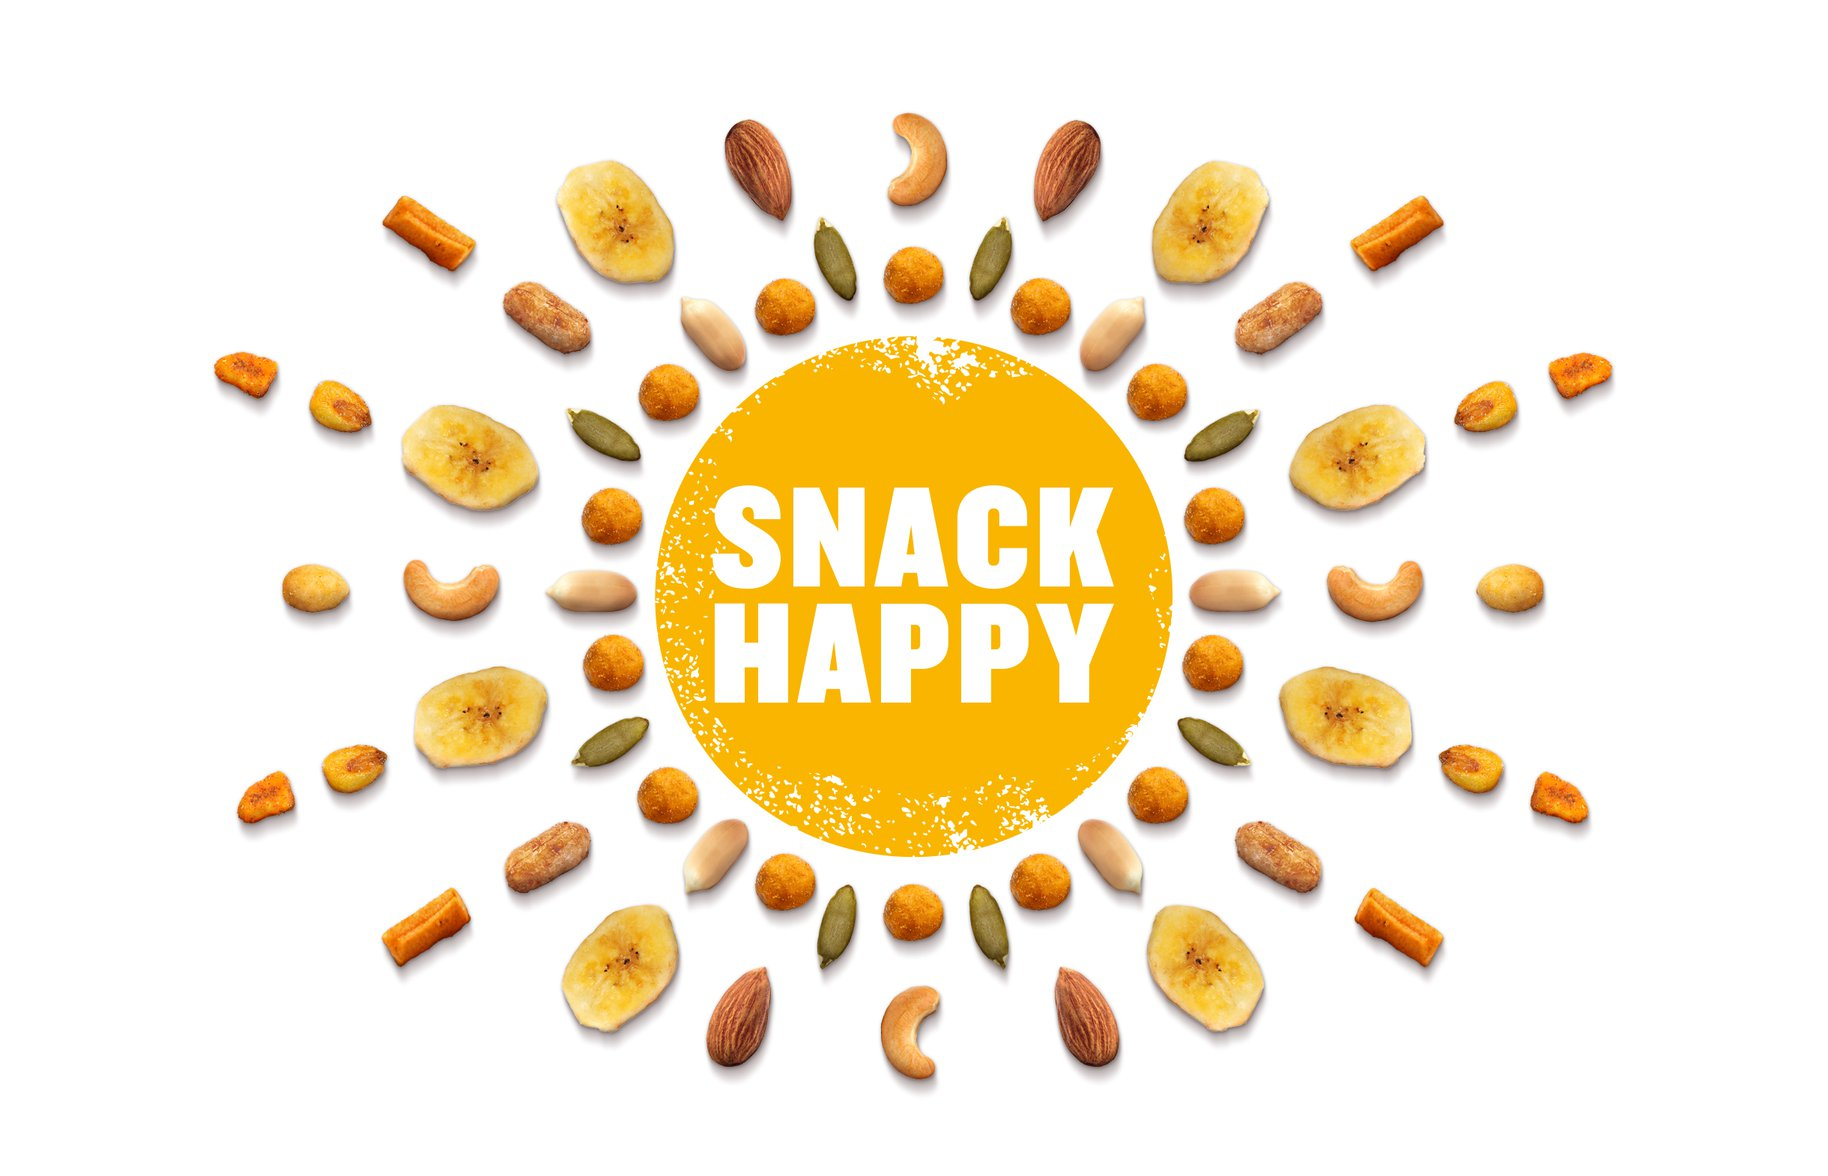 Alison's Pantry - Snack Happy image